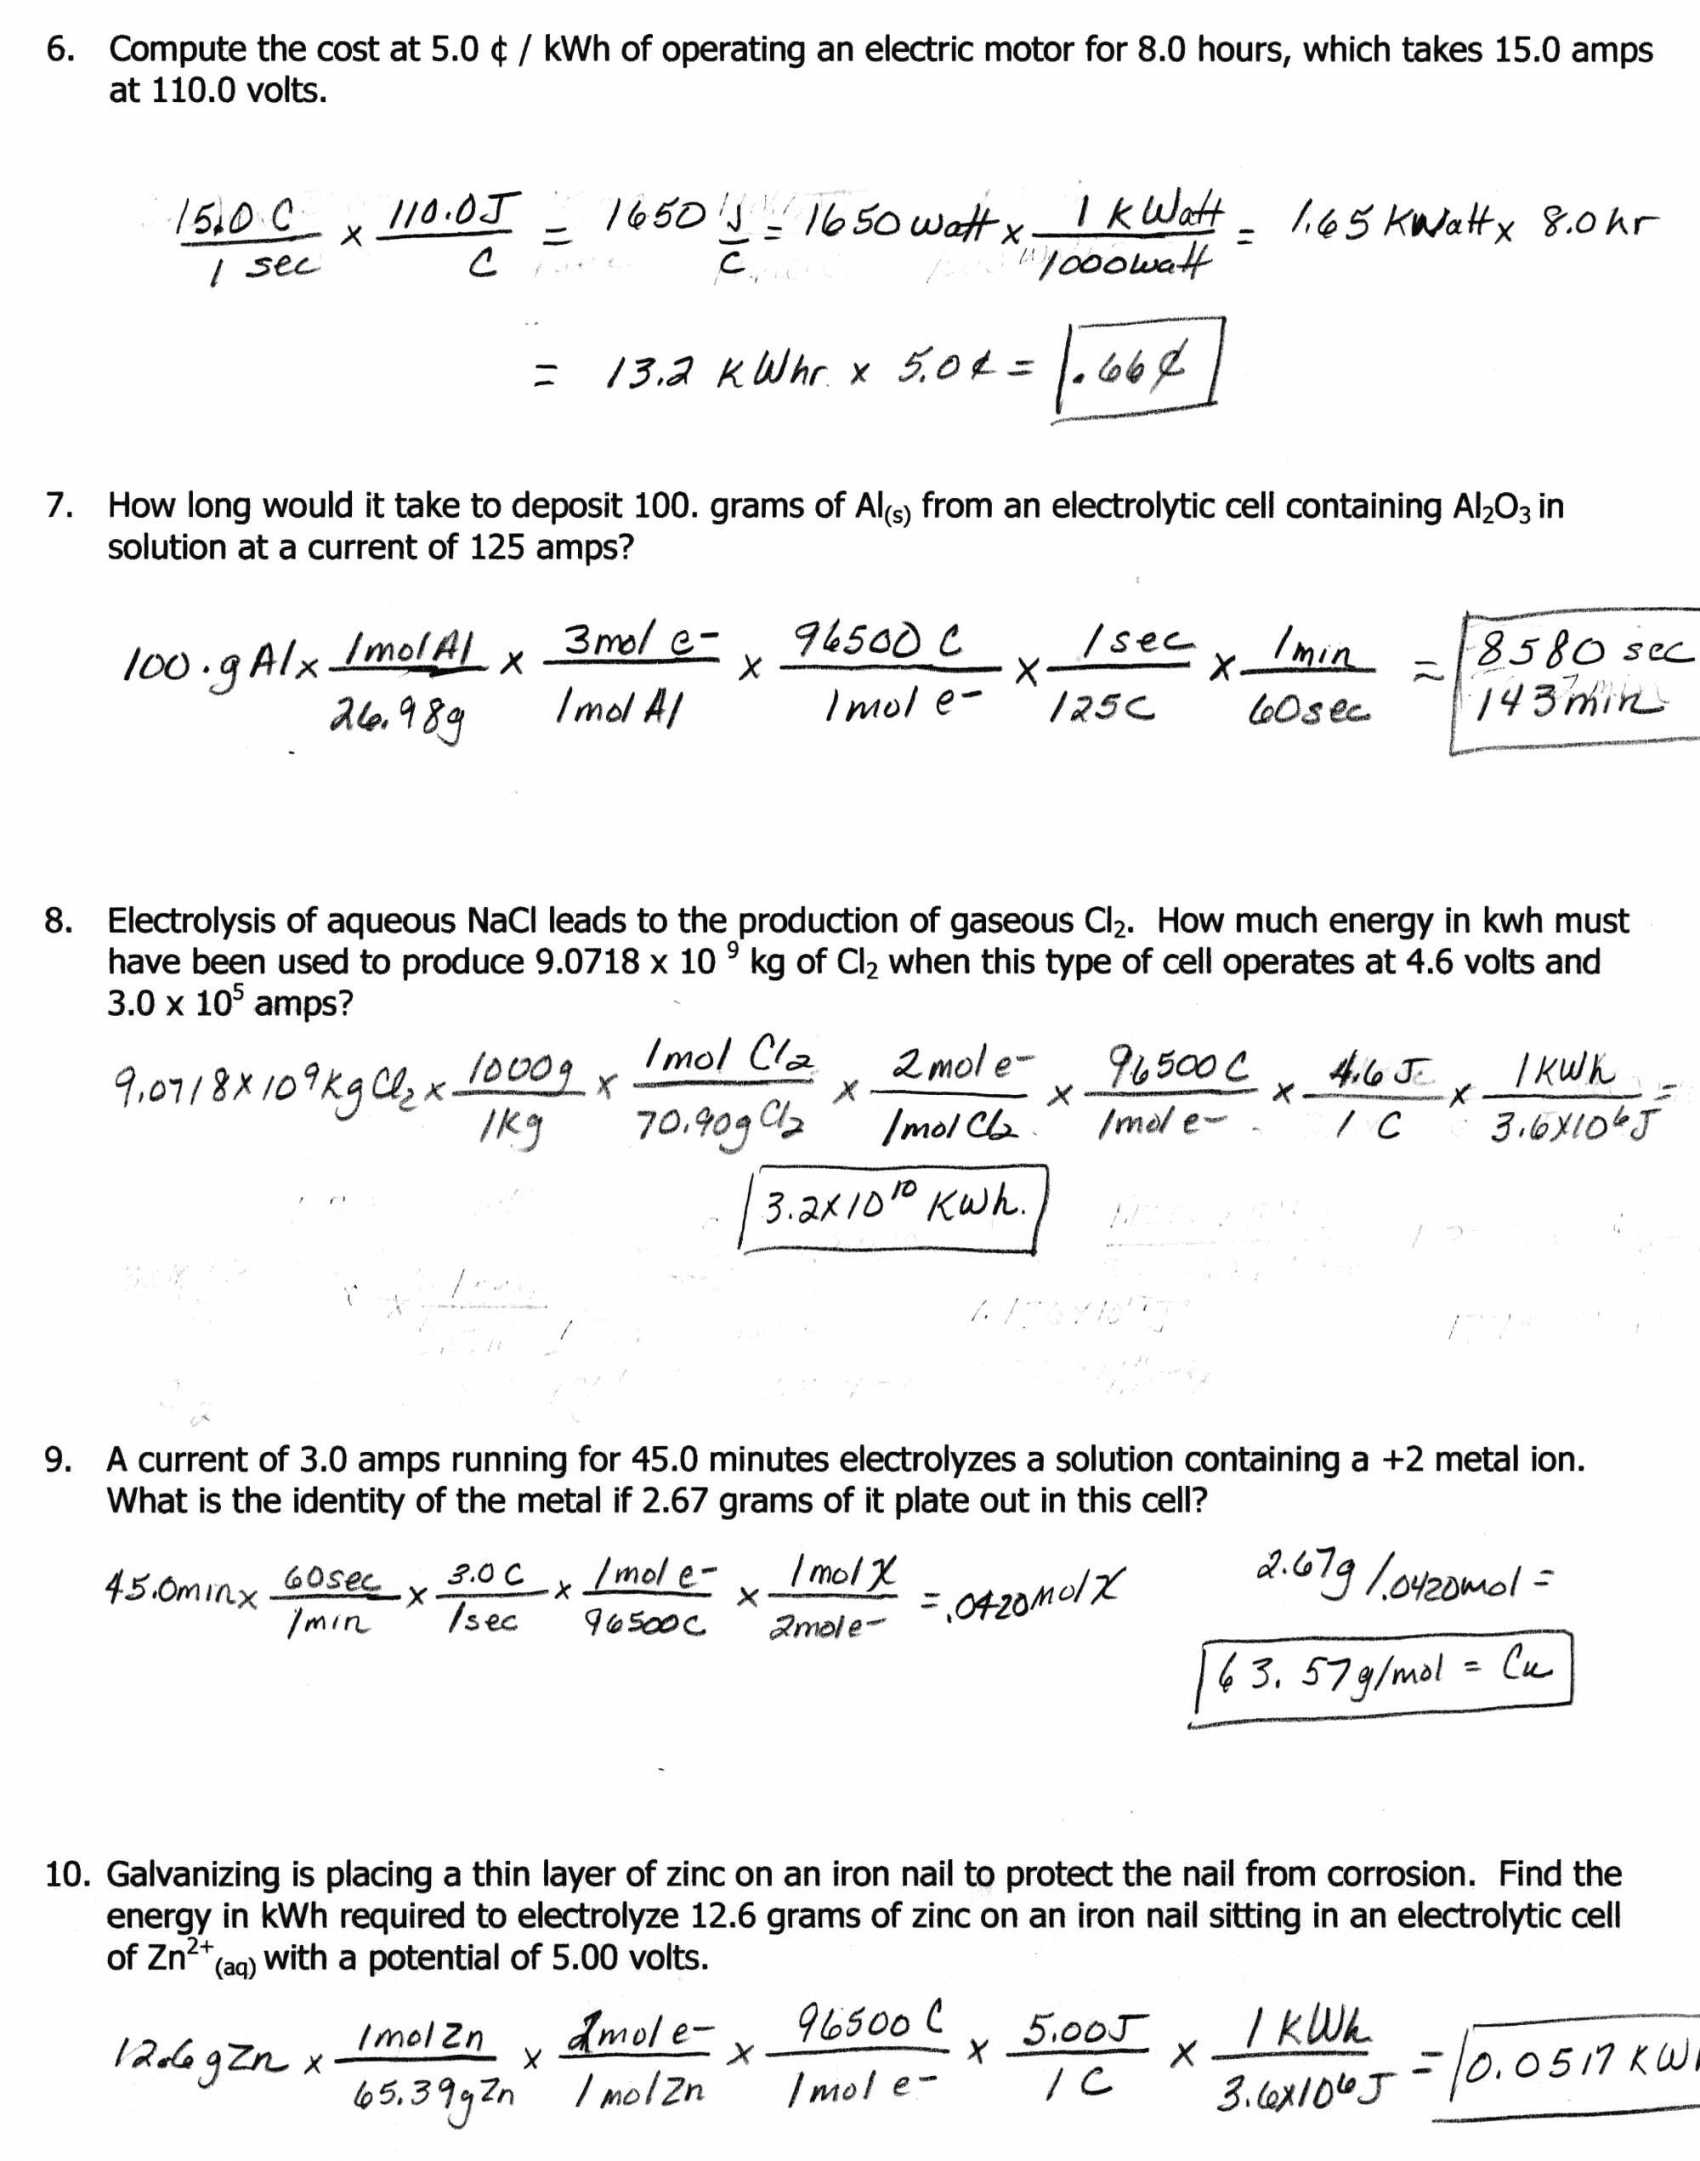 Worksheet Mole Mass Problems With Calculating Molar Mass